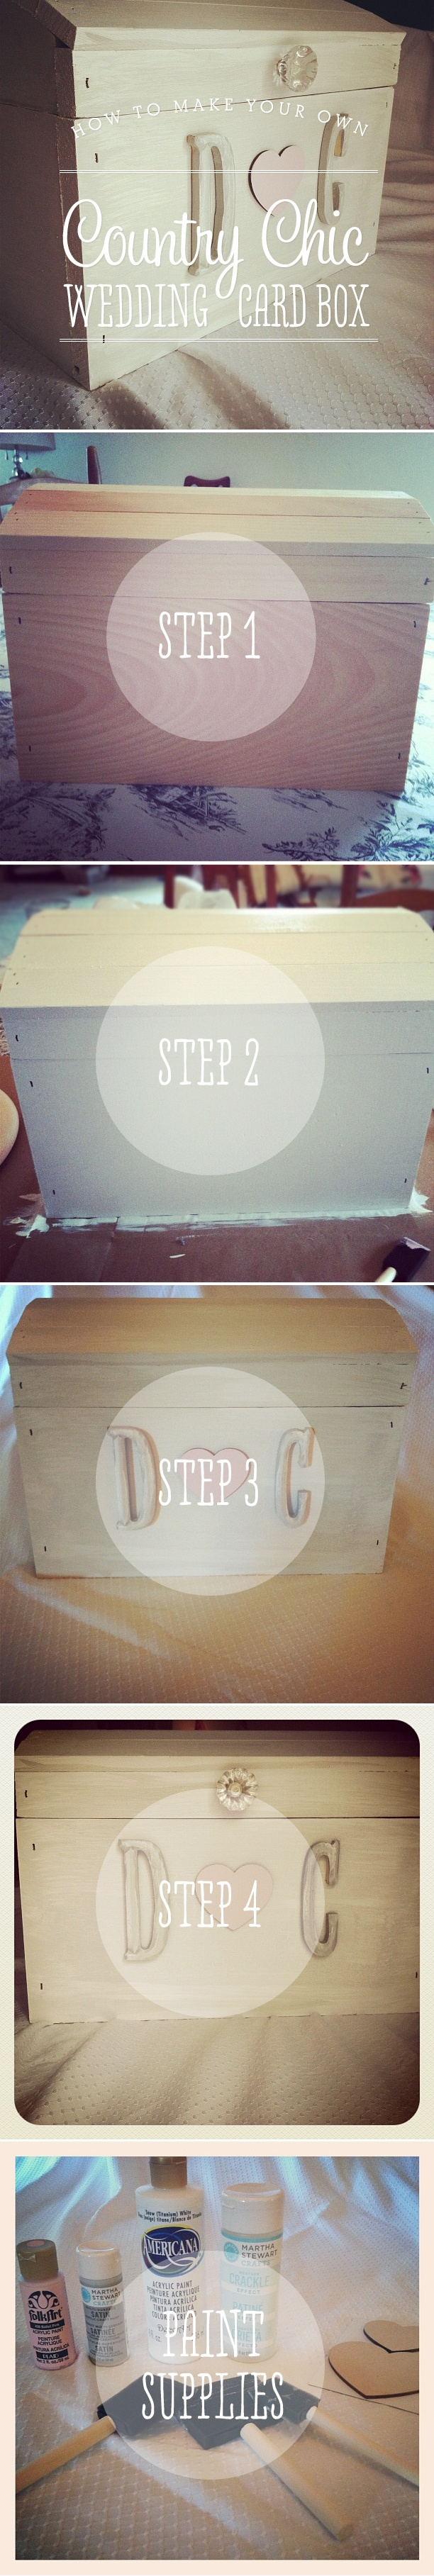 DIY:  Wedding Card Box // love this, something for all the little wedding knick knacks that you don't want to throw away - garter, cake cutter, cake topper, etc.